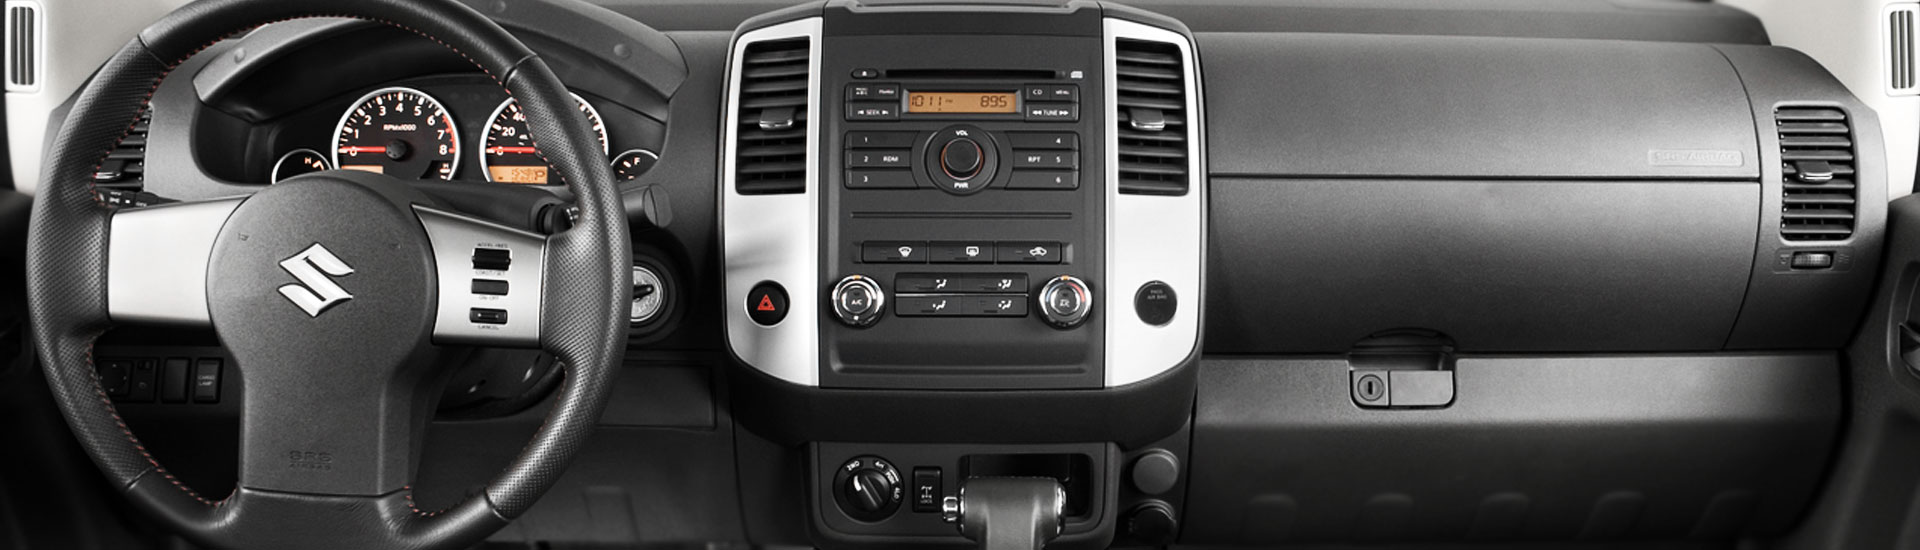 2003 Suzuki Grand Vitara Custom Dash Kits